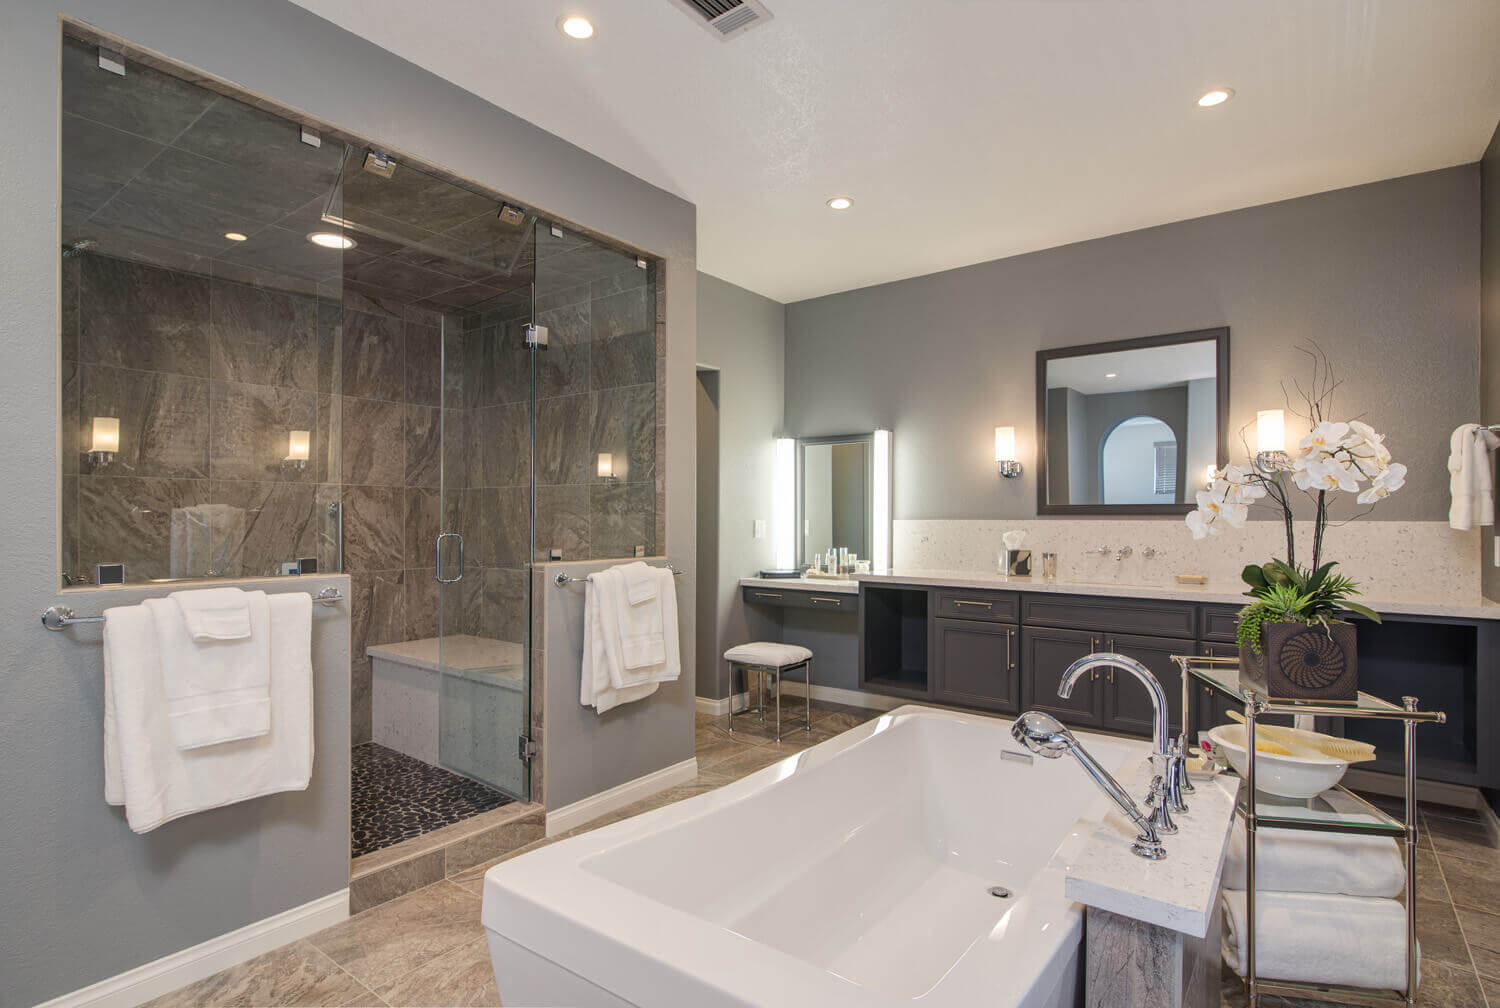 2018 Bathroom Renovation Cost Estimate Bathroom Remodeling Prices